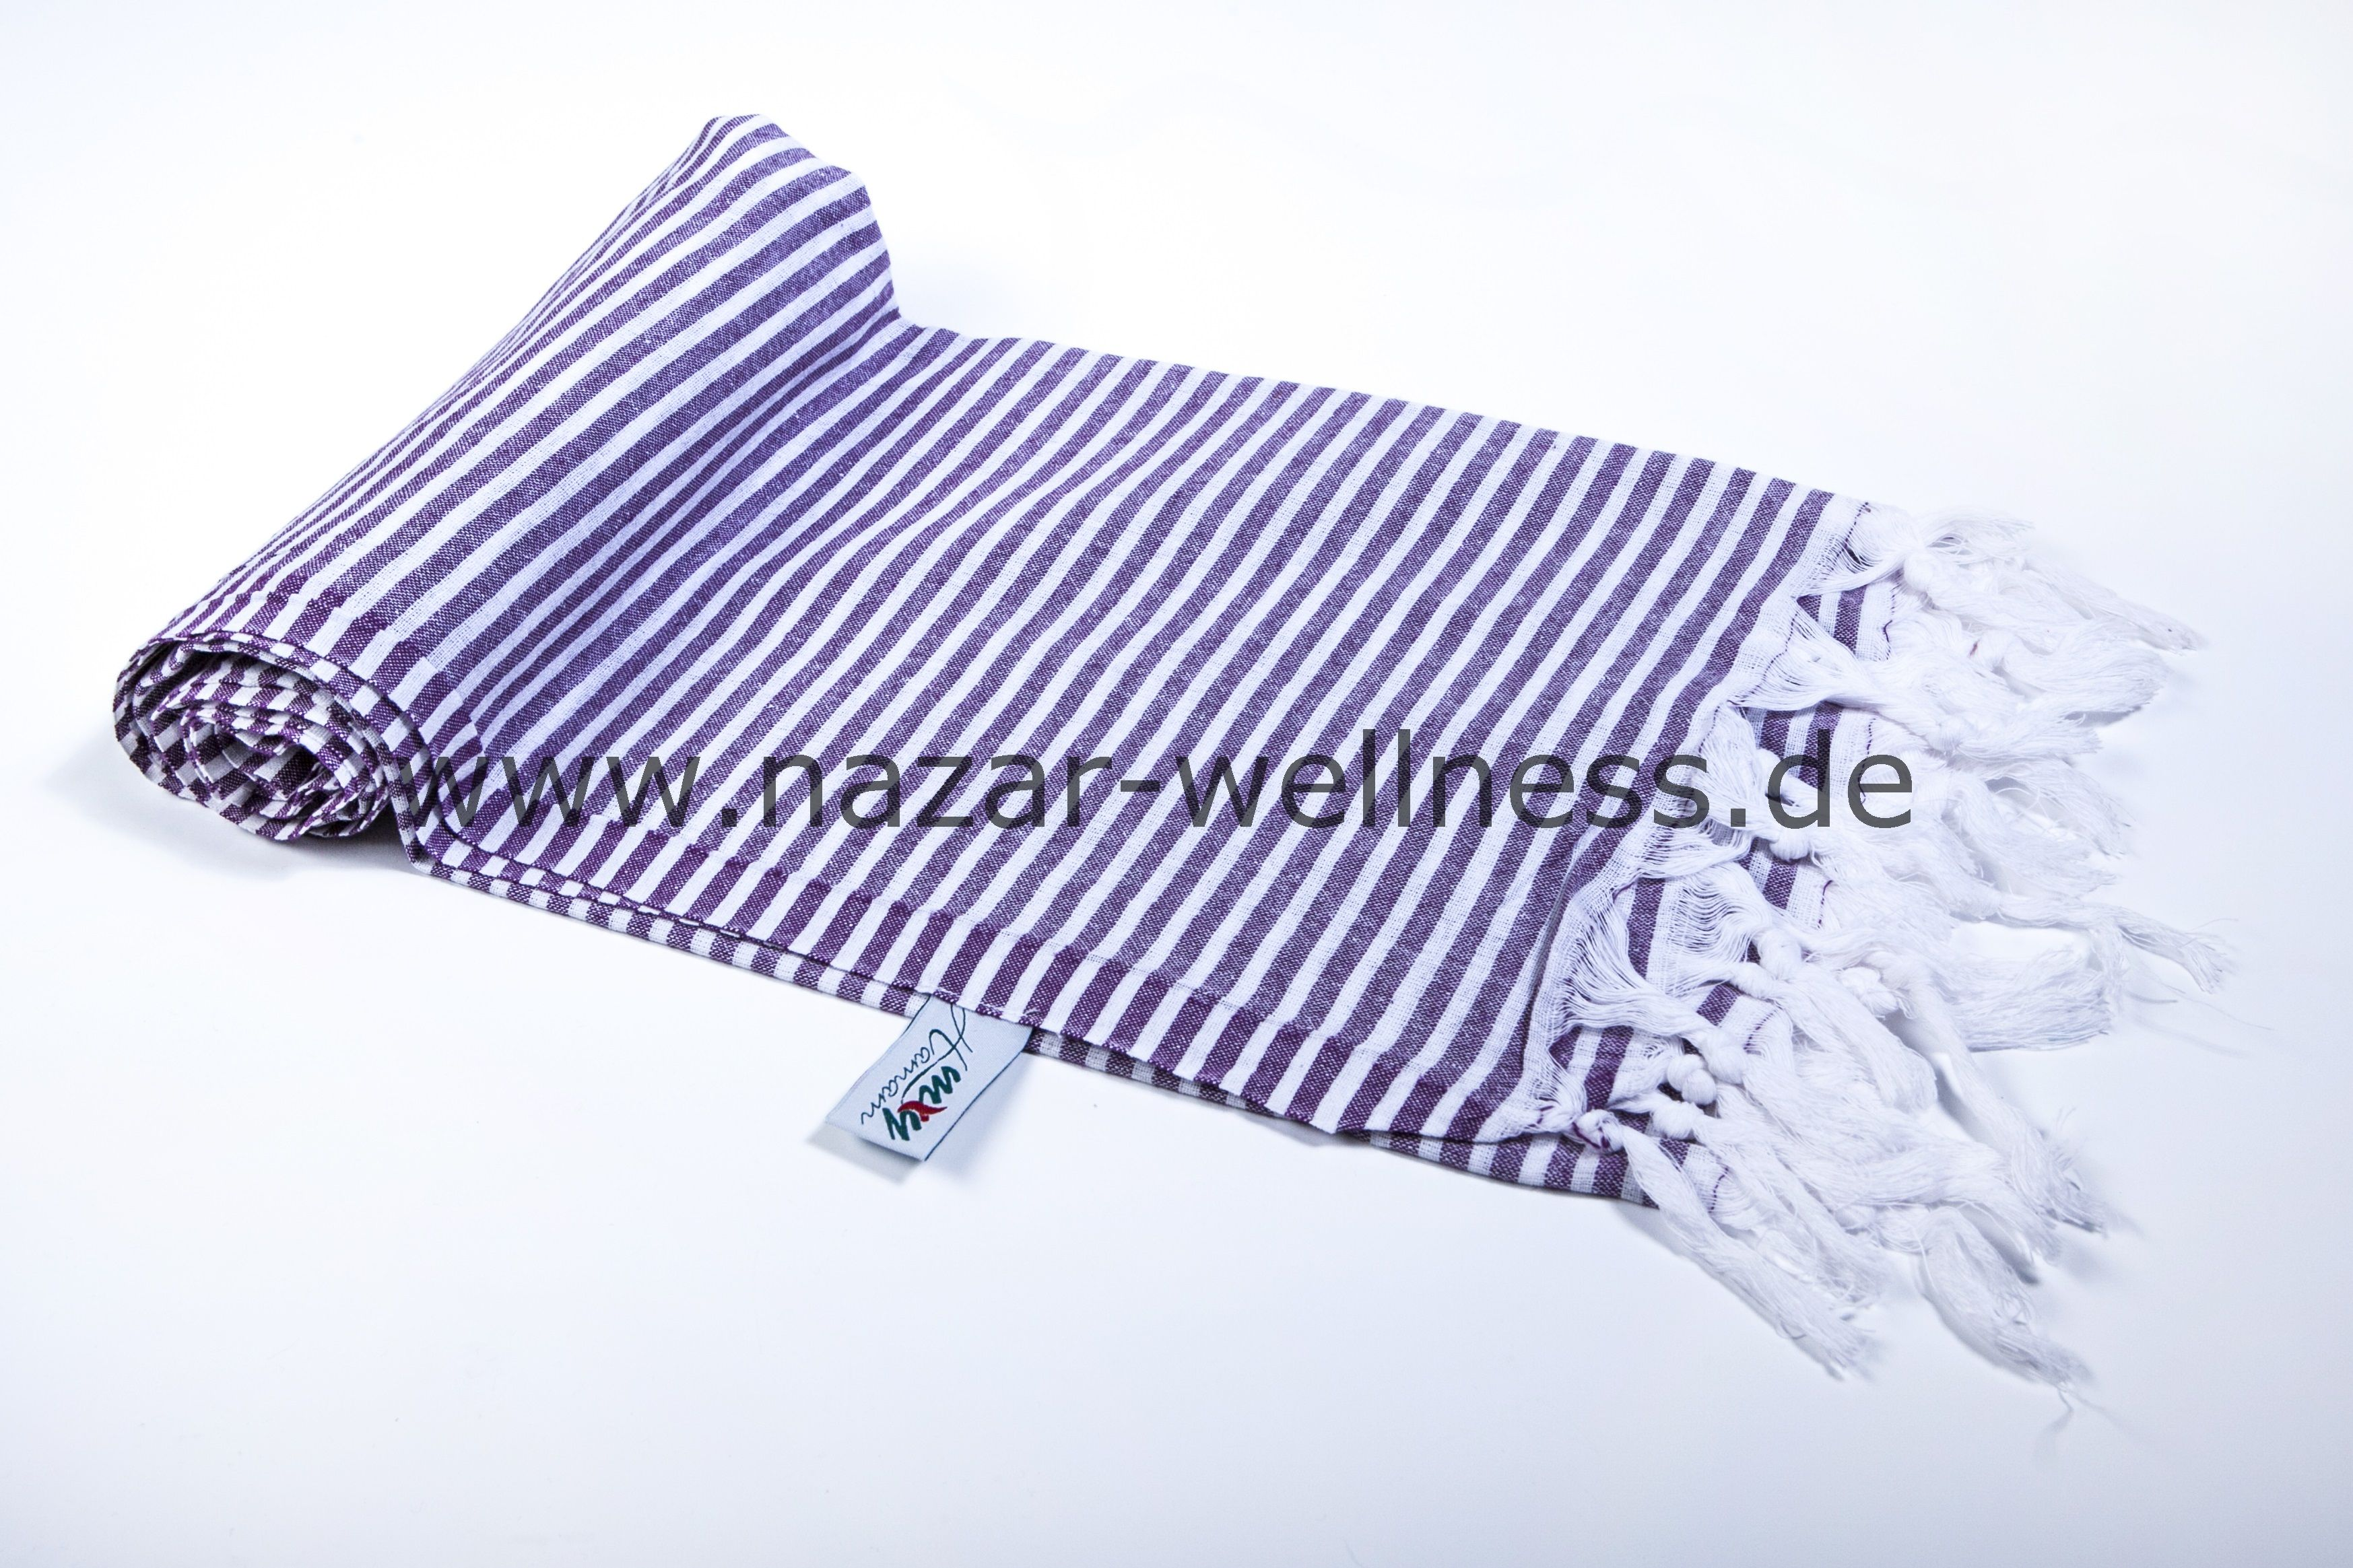 Hamam, Pestemal, Hamam Towel, SPA, Wellness, Saunatuch, Hamamtuch, Towel